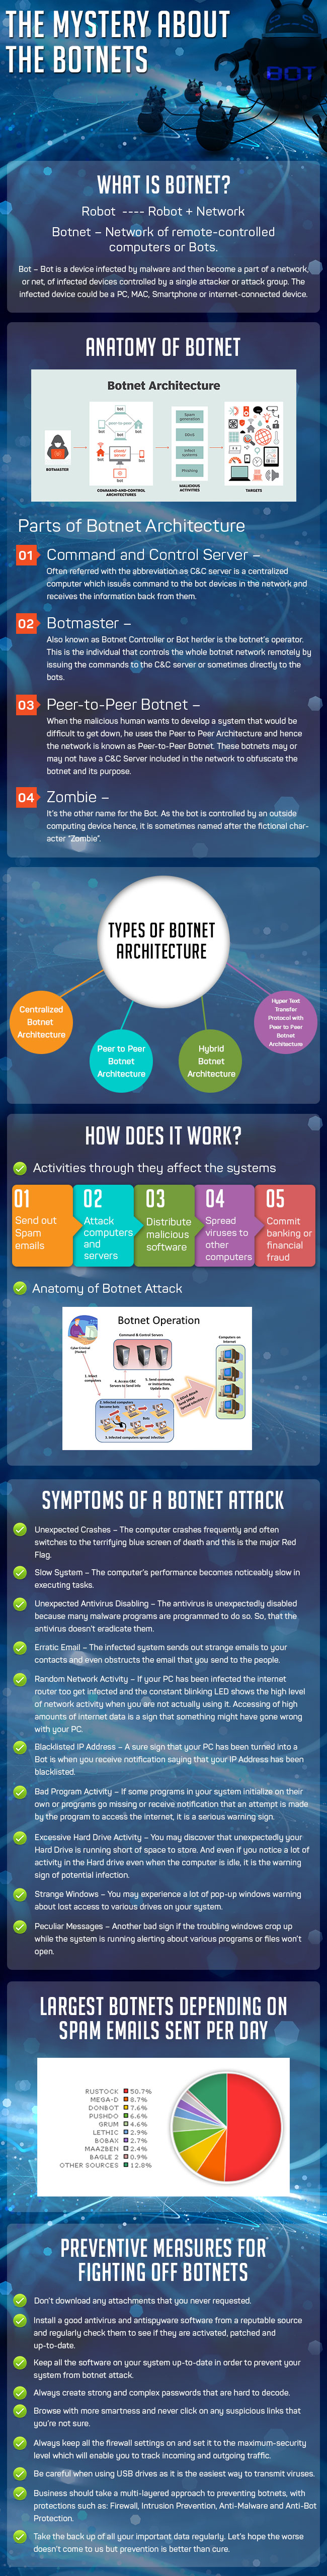 Mystery About the Botnets Infographic